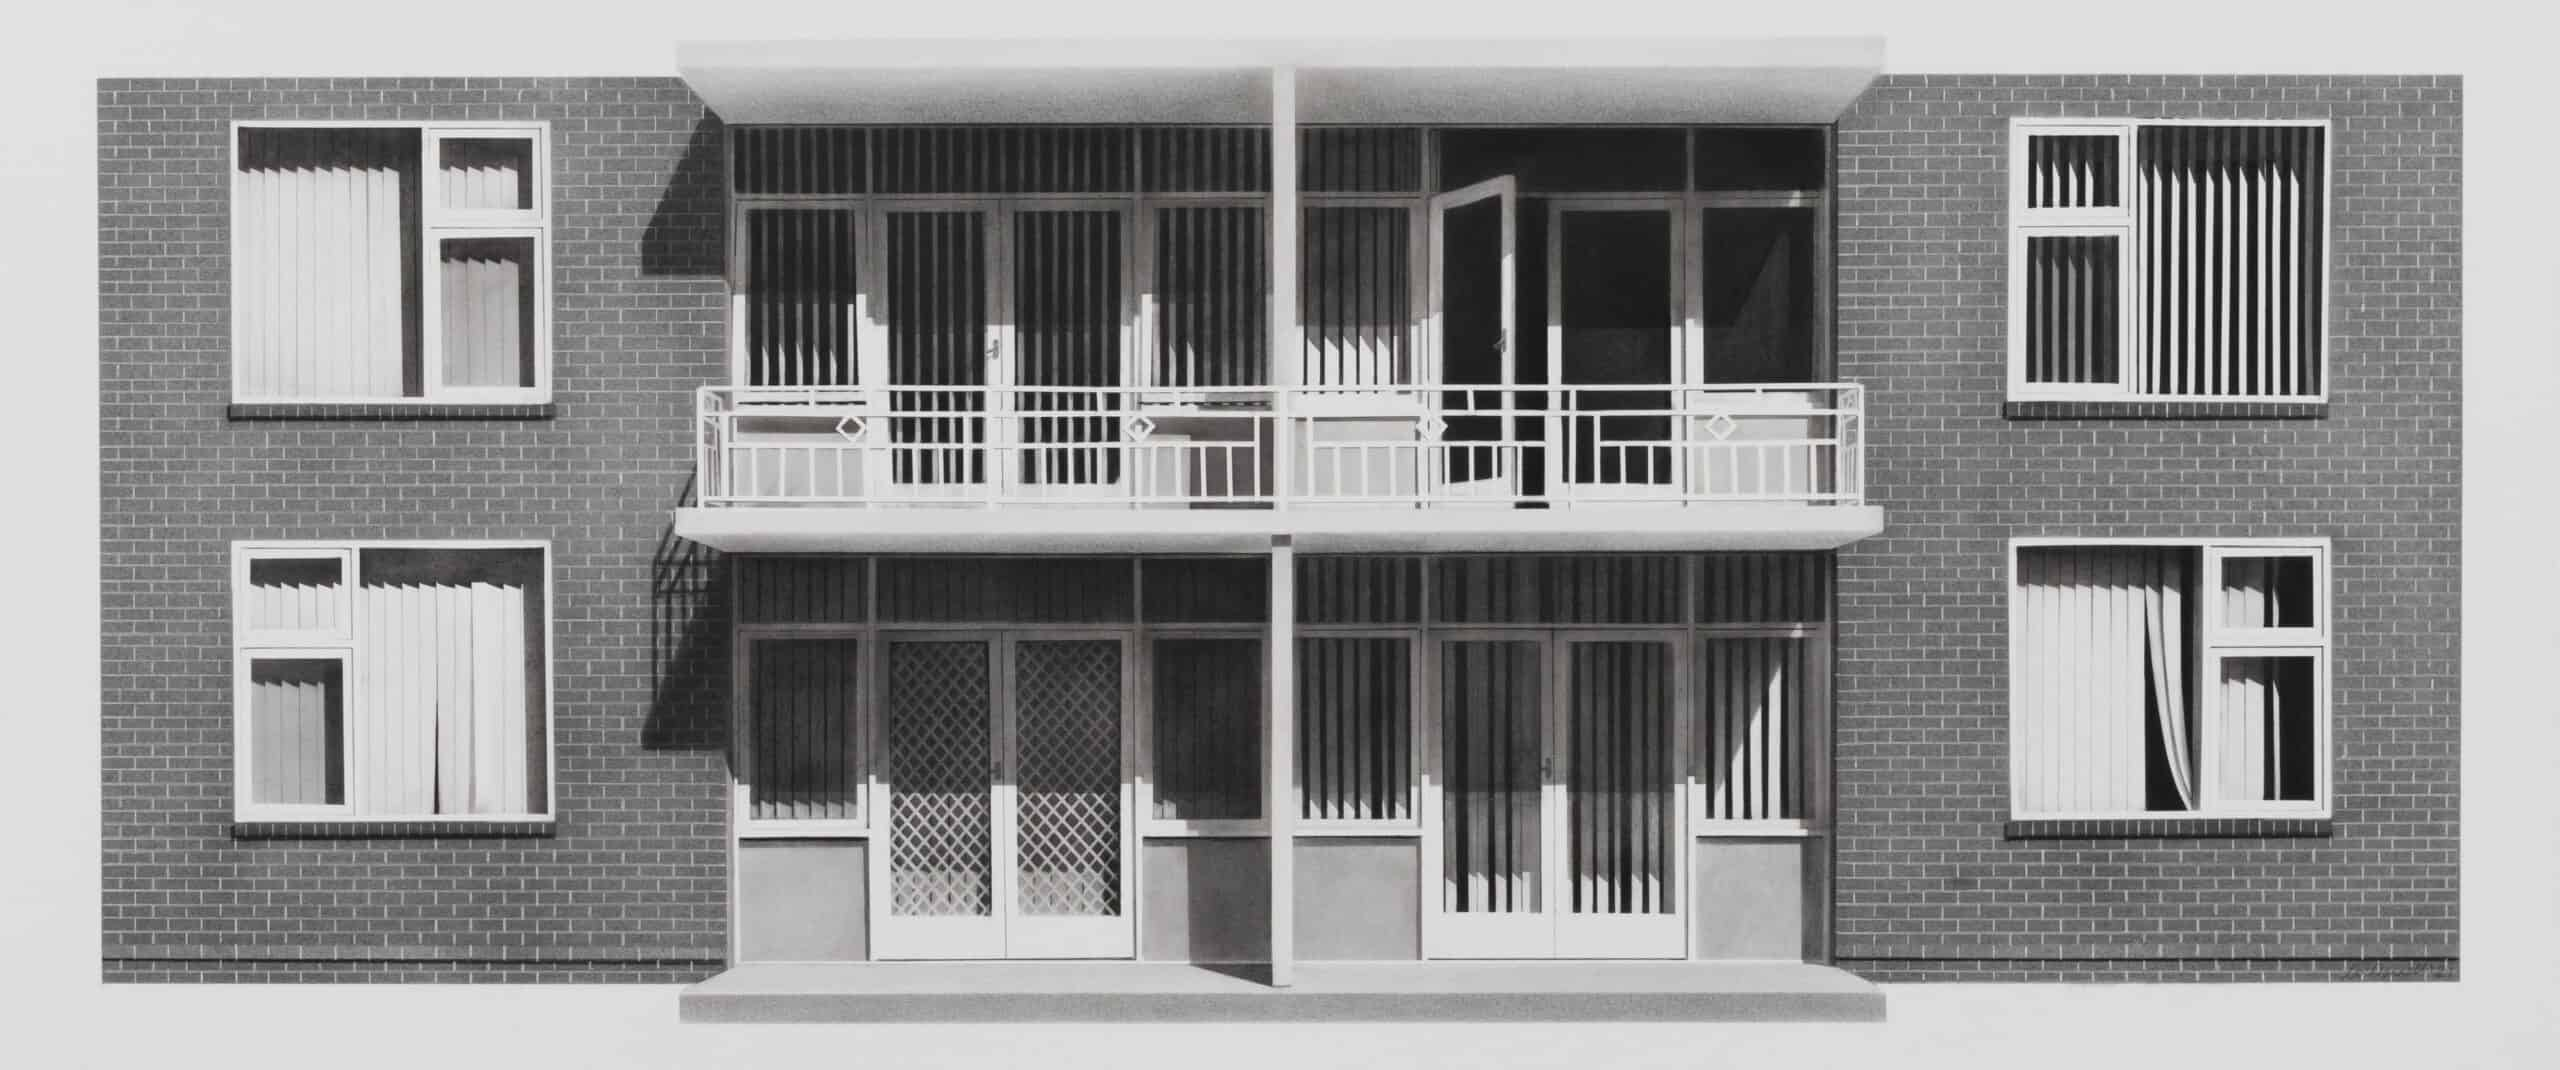 'Pine Court', 2021, charcoal and graphite on paper, 47 x 90 cm framed with museum glass